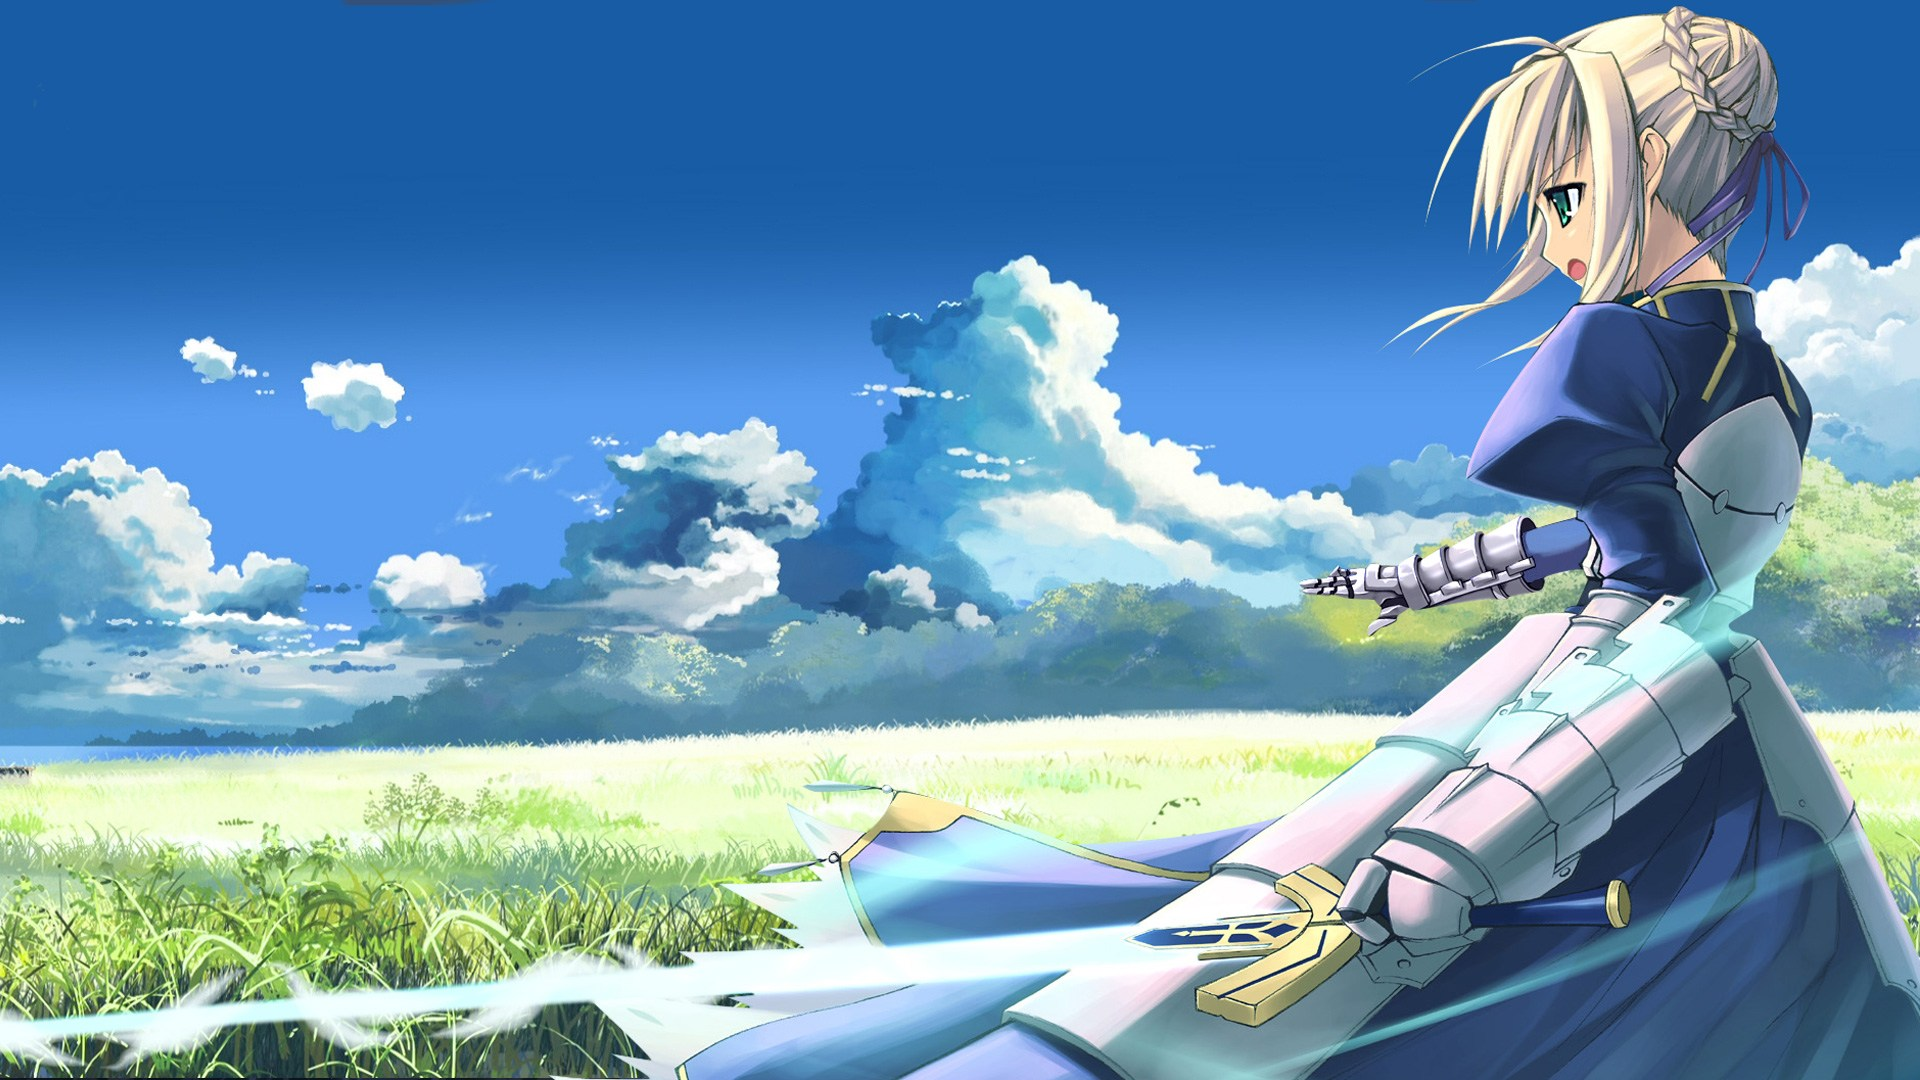 Wallpaper 1 From Fate Stay Night Hinh Nen Anime Pc 310240